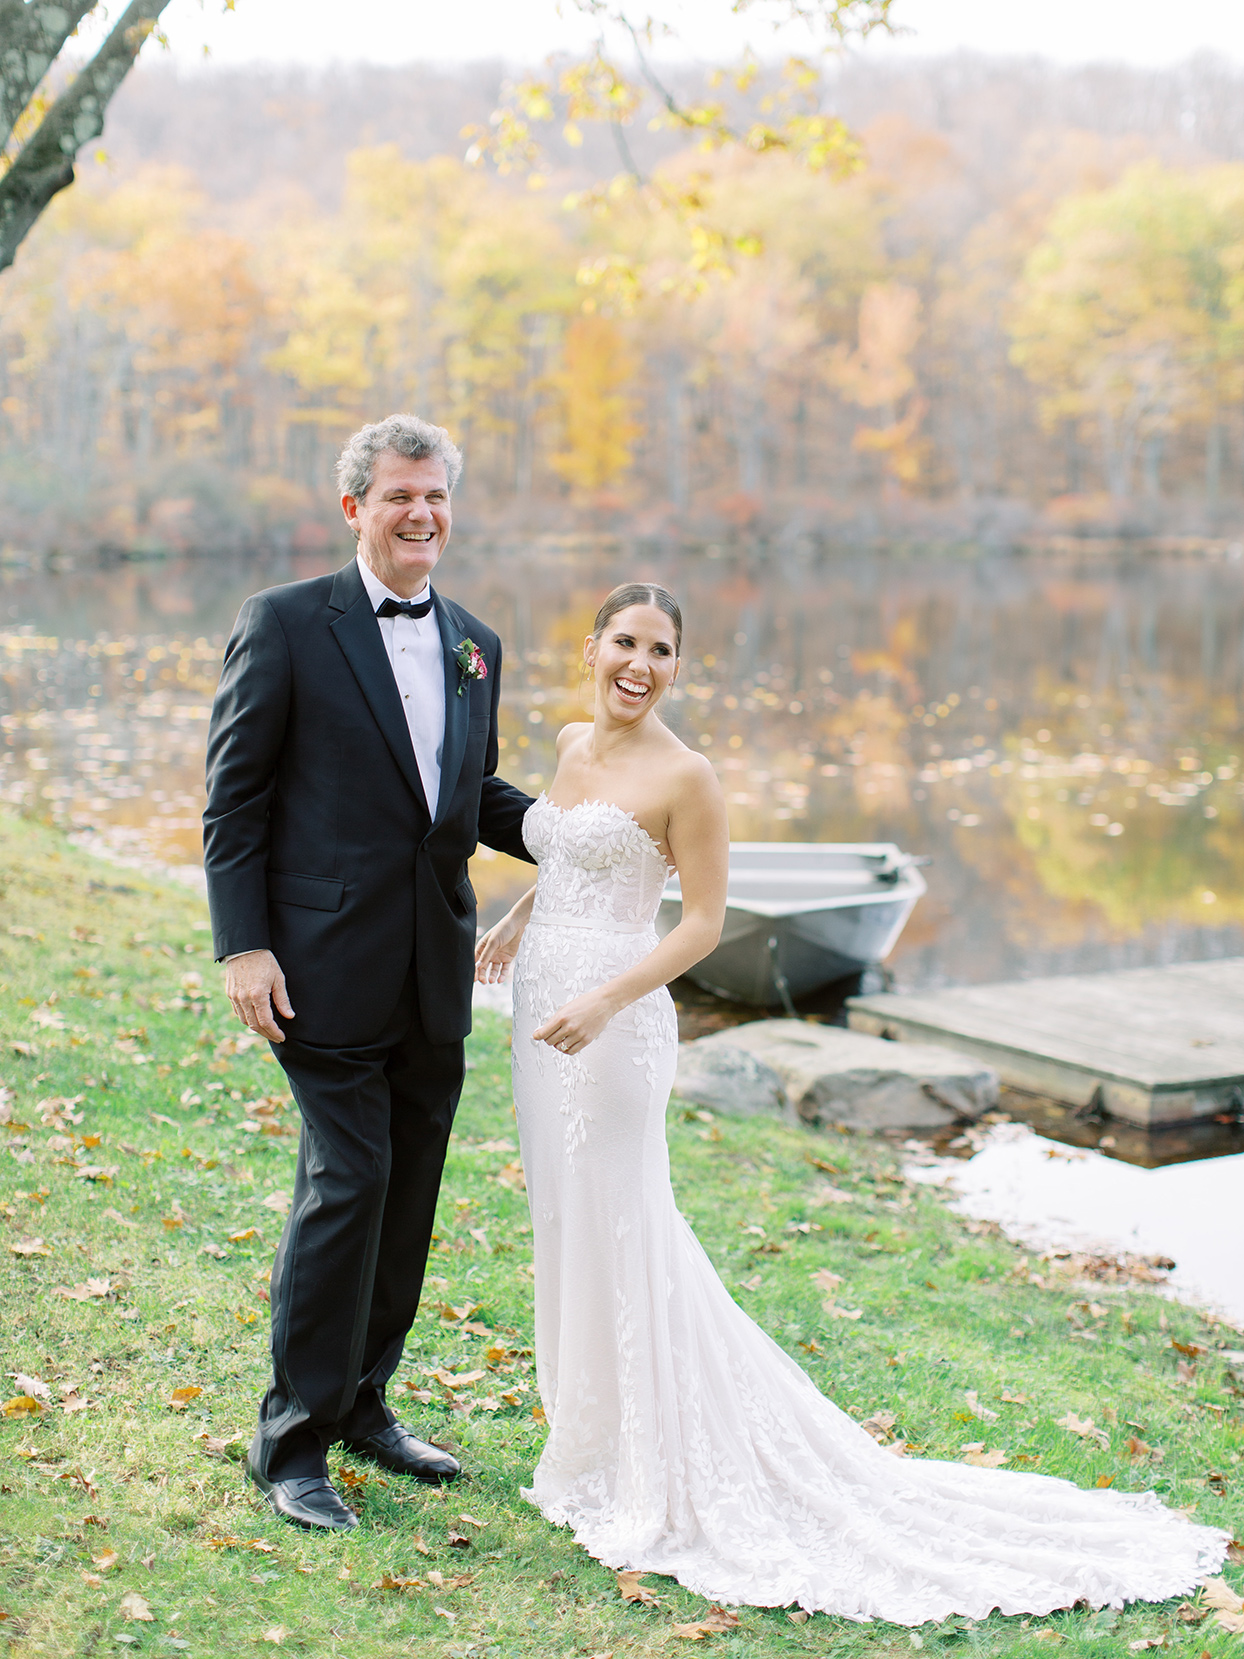 wedding father and bride portrait by water